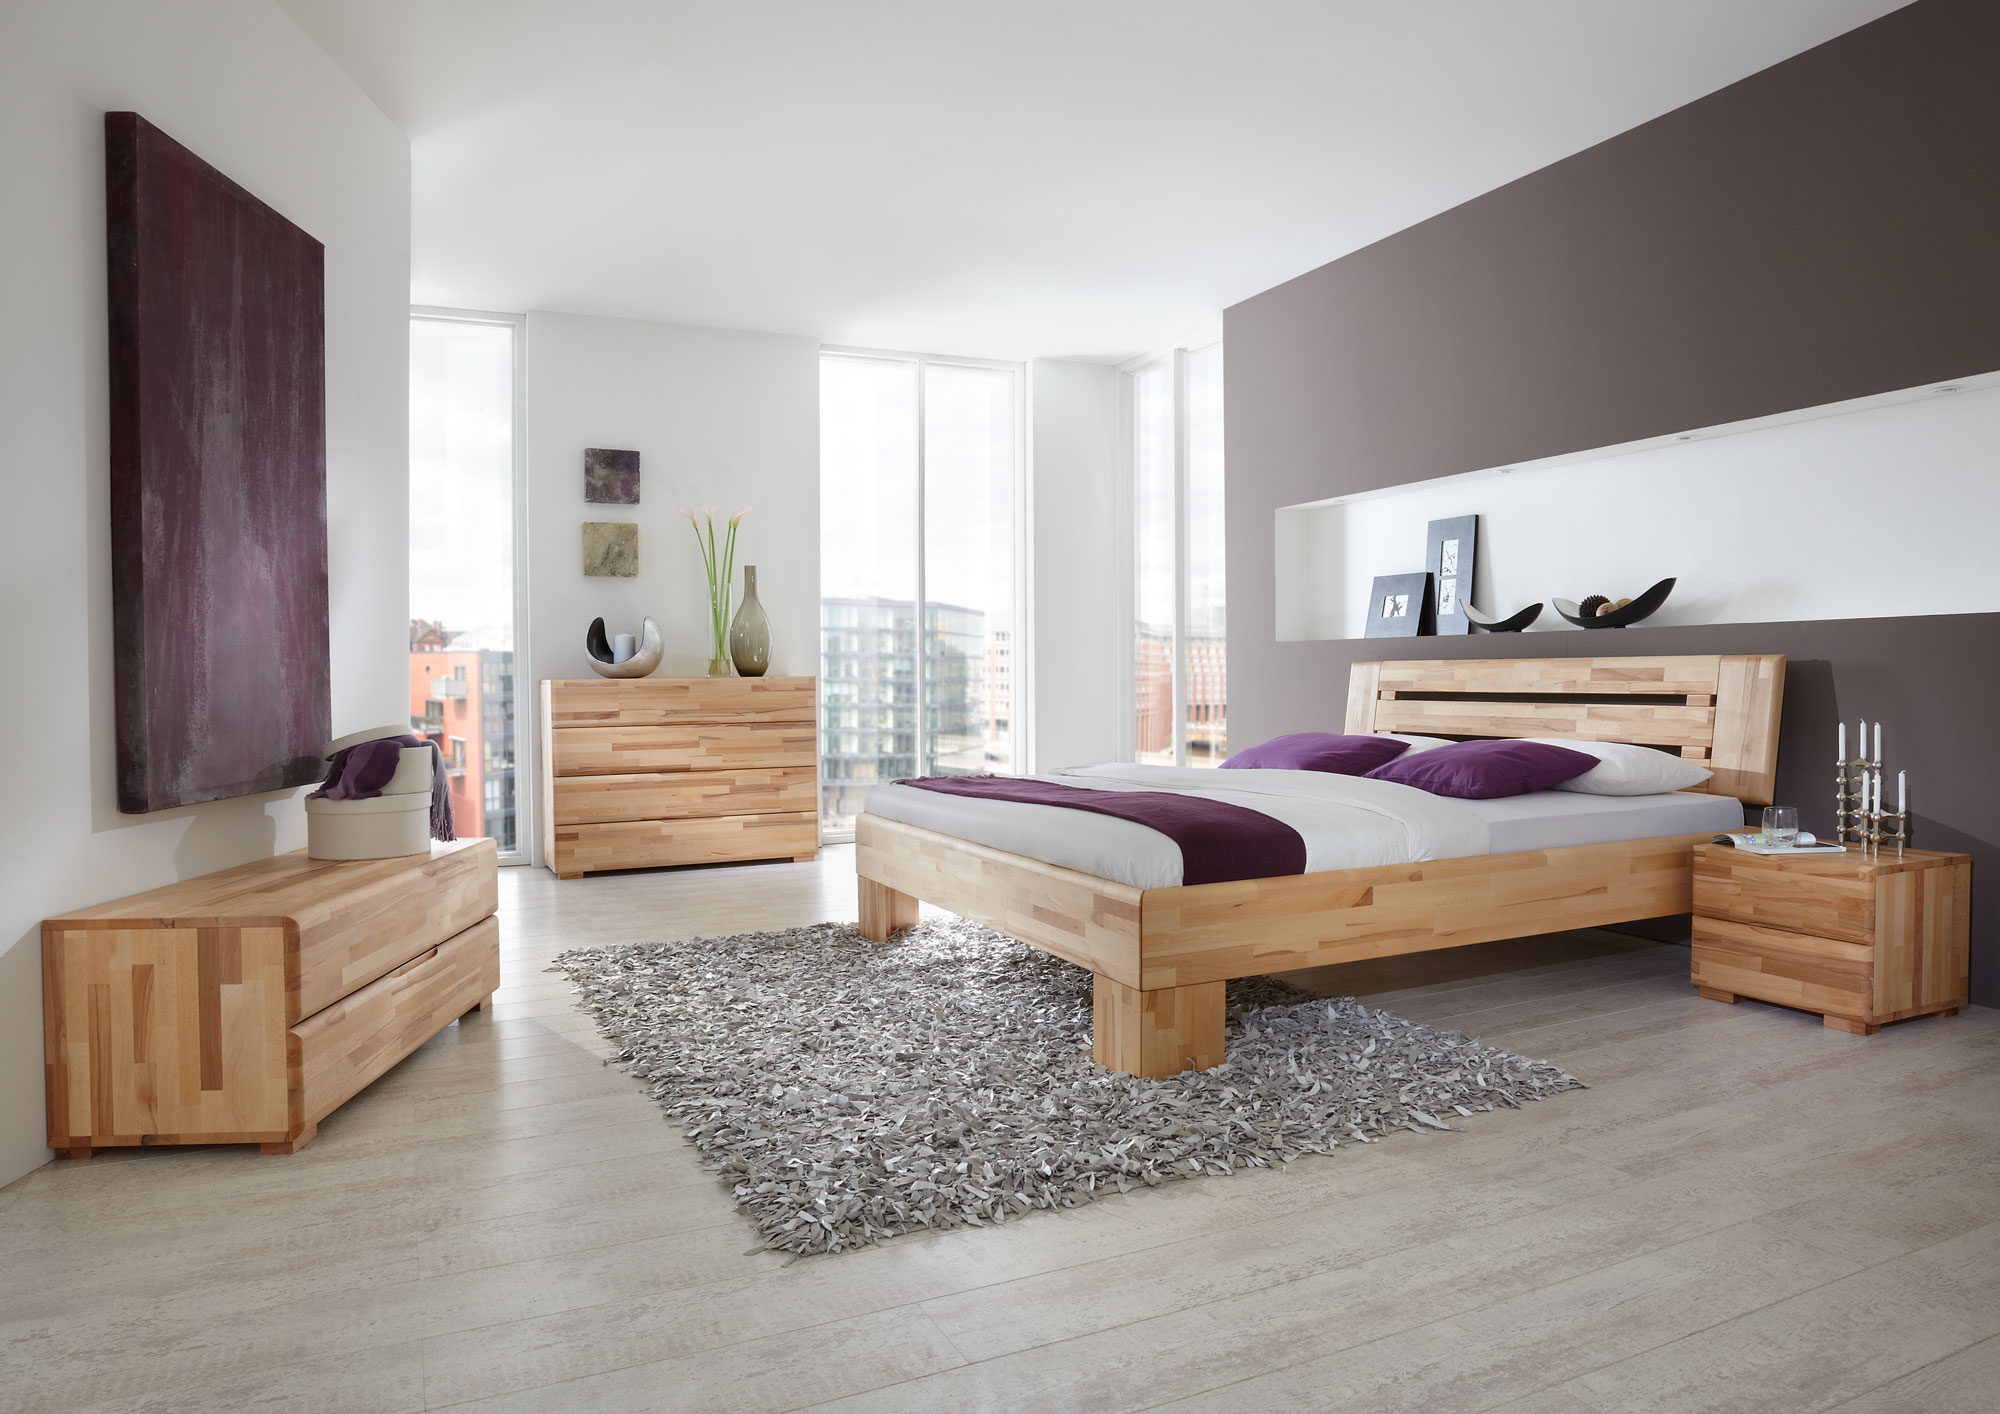 schlafzimmer buche hell inspiration f r die gestaltung der besten r ume. Black Bedroom Furniture Sets. Home Design Ideas